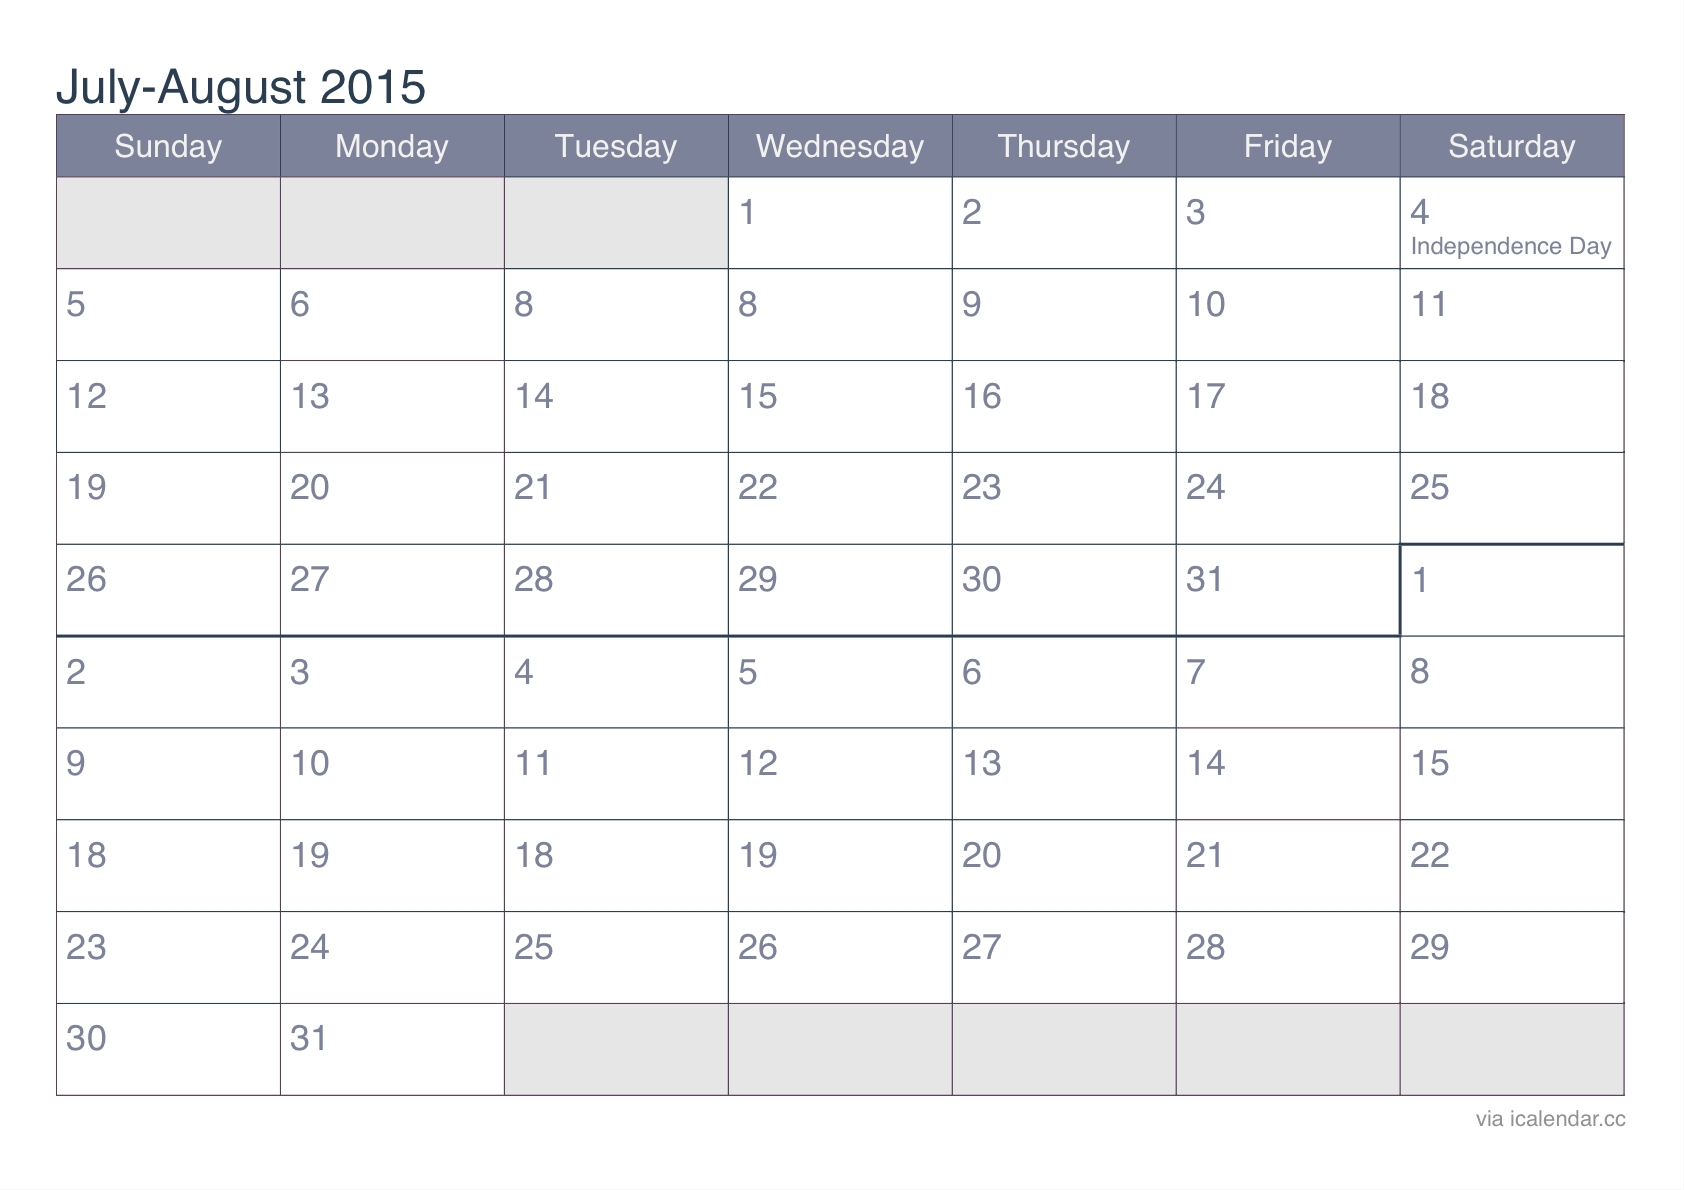 July And August 2015 Printable Calendar - Icalendars  Printable July Through August Calendars